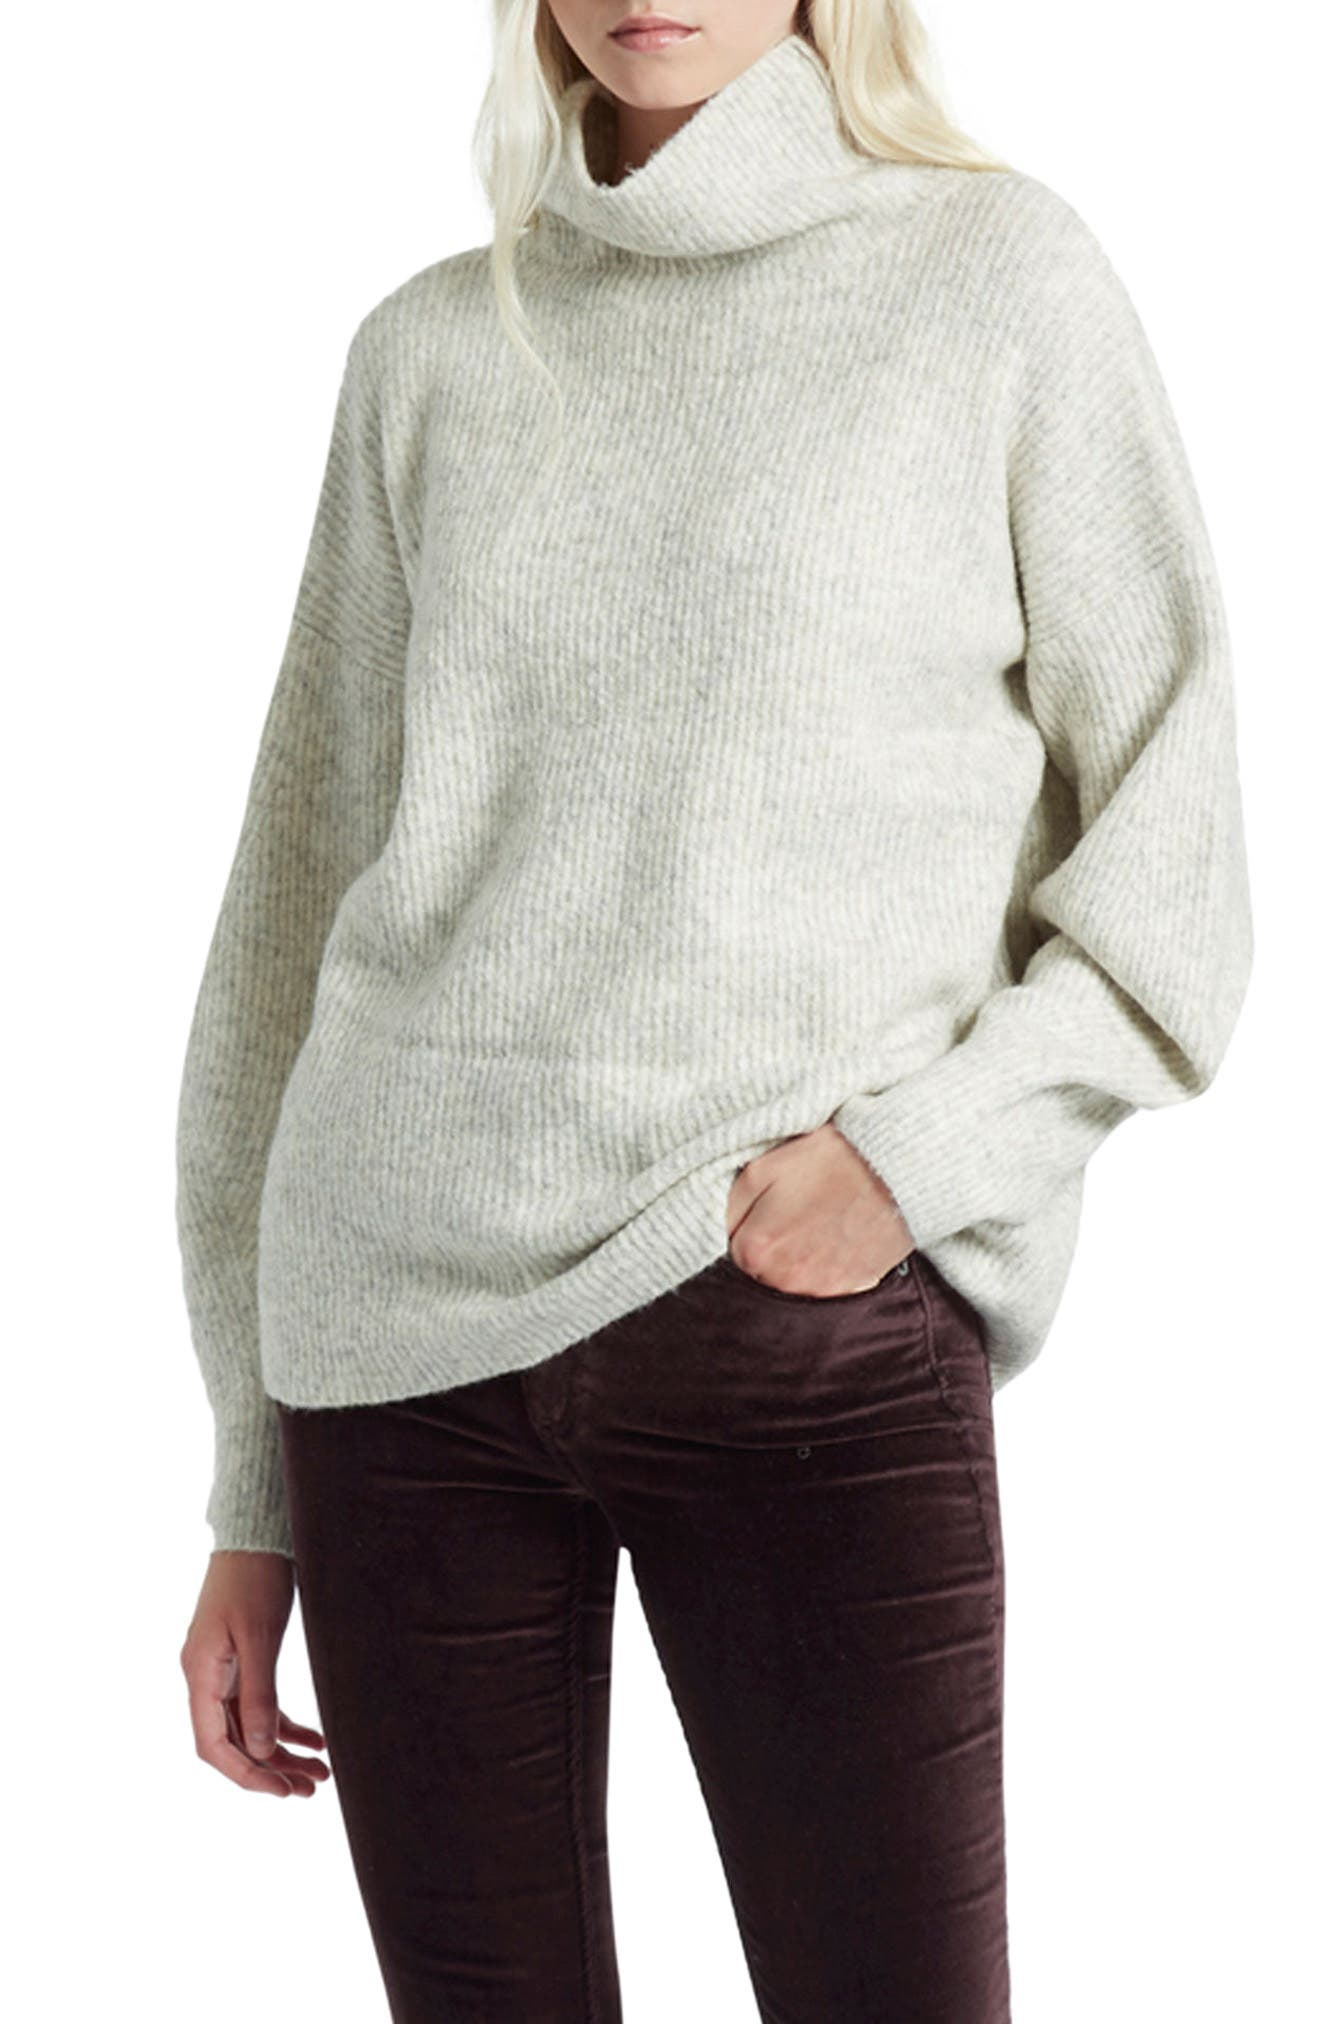 Women's Beige Turtleneck Sweaters | Nordstrom